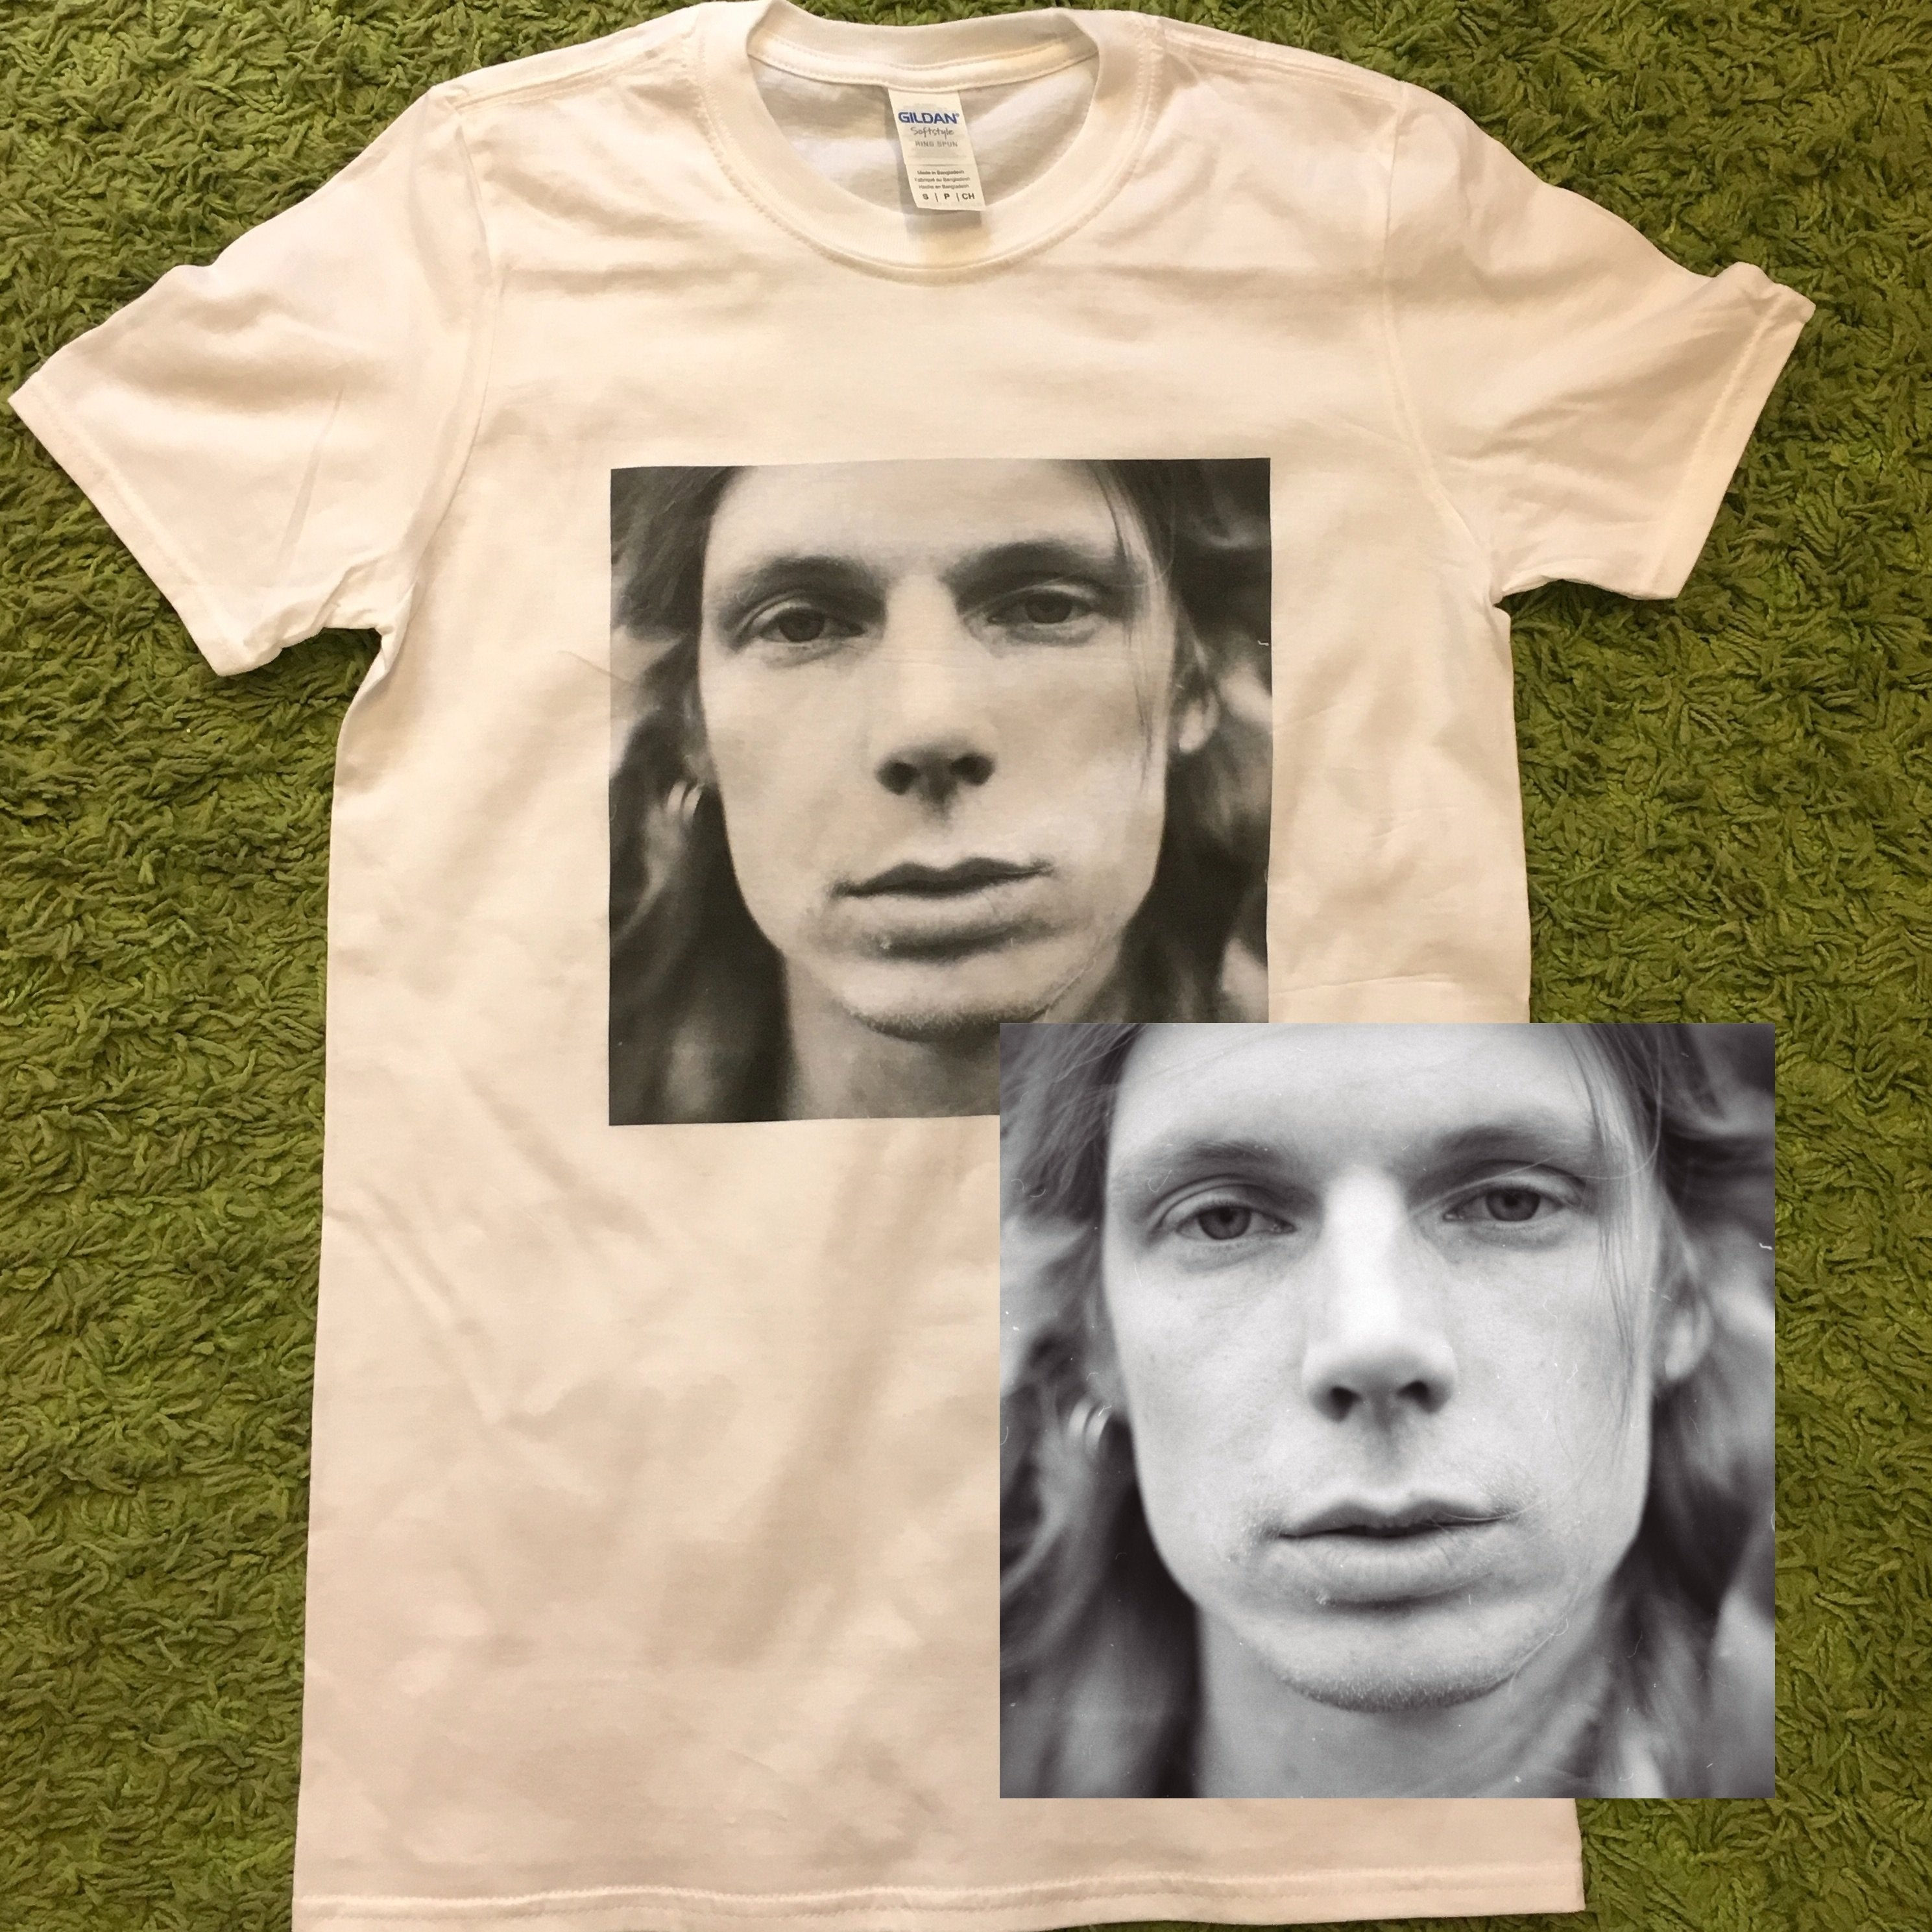 Marcus Norberg and the Disappointments - Heal the World (Vinyl + T-shirt bundle)